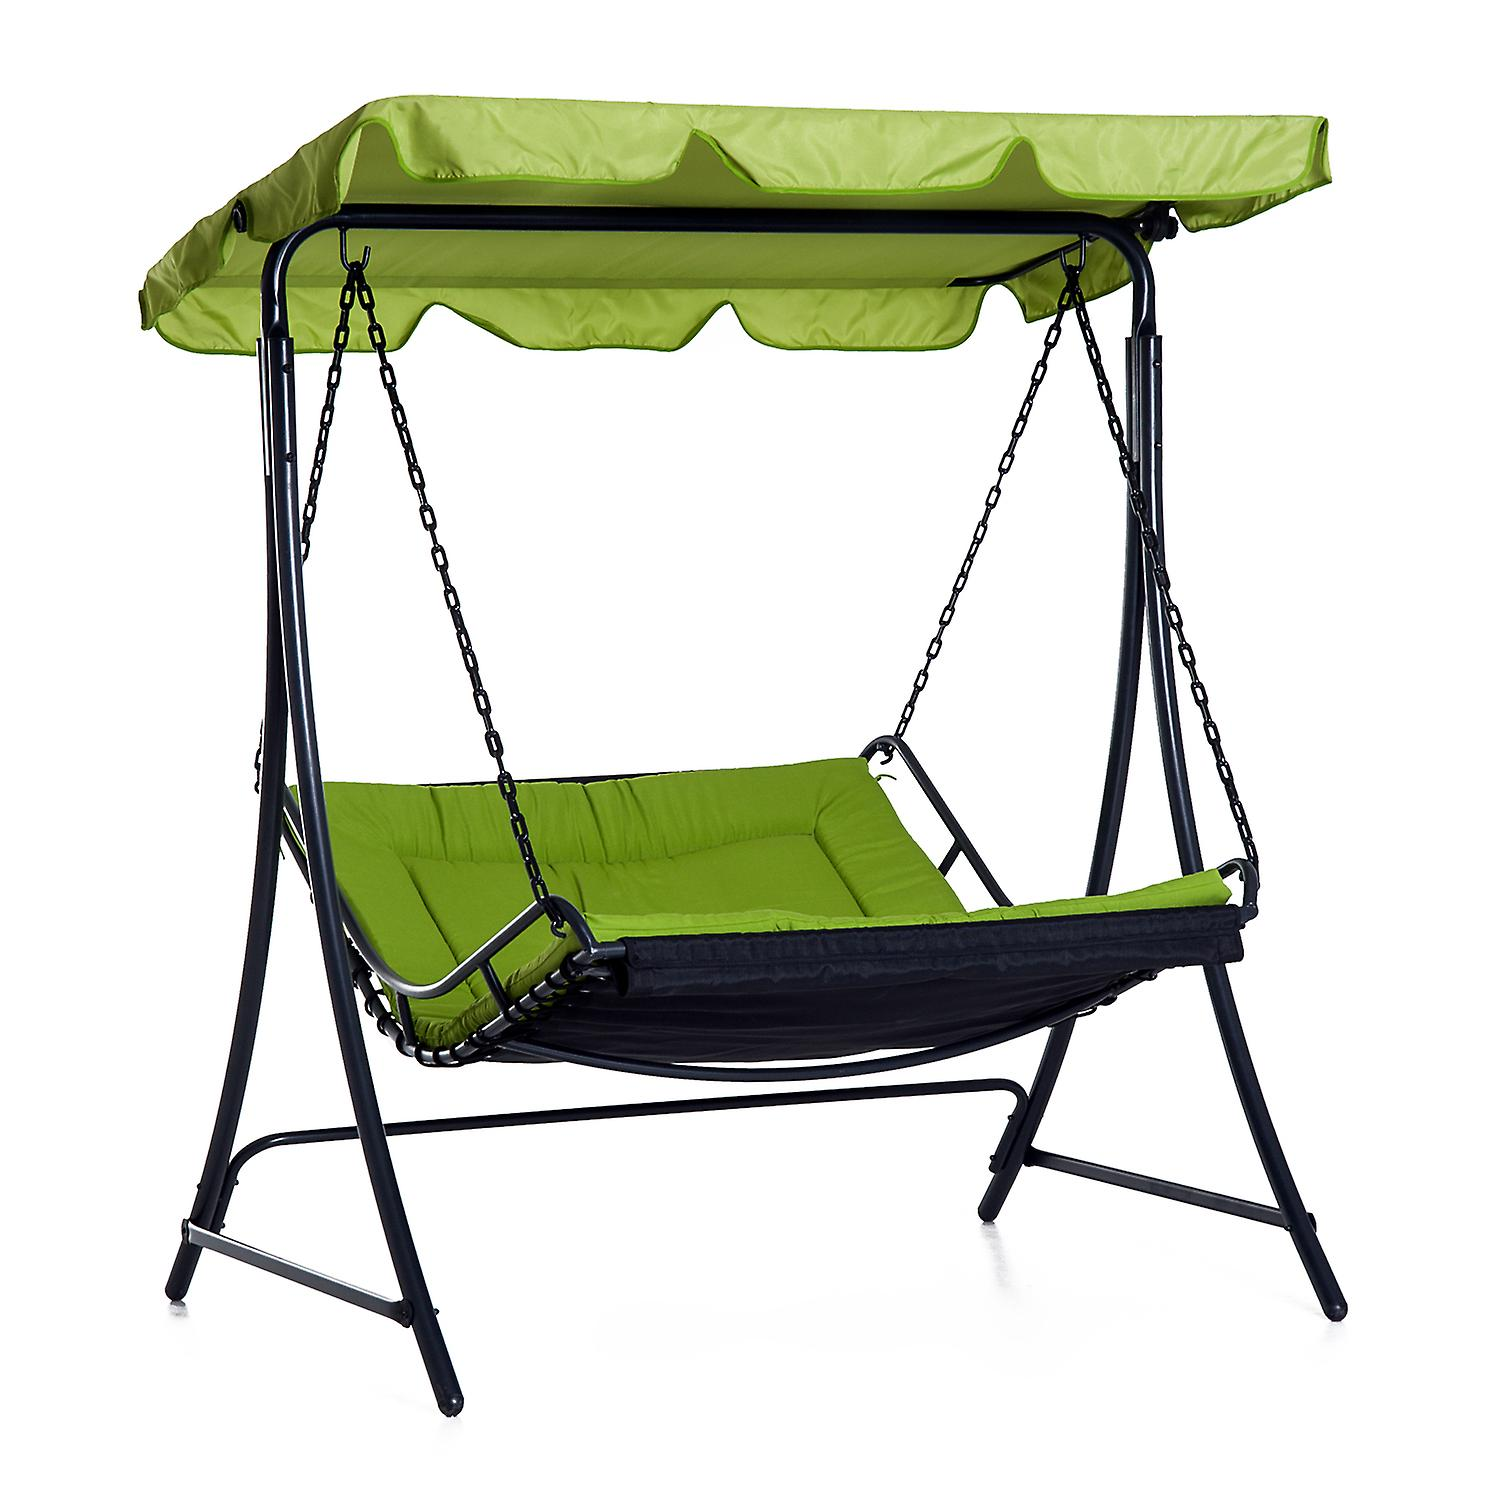 Outsunny Swing Chair Hammock Seat Bench Outdoor Garden Adjustable Canopy Cushion Bed Green